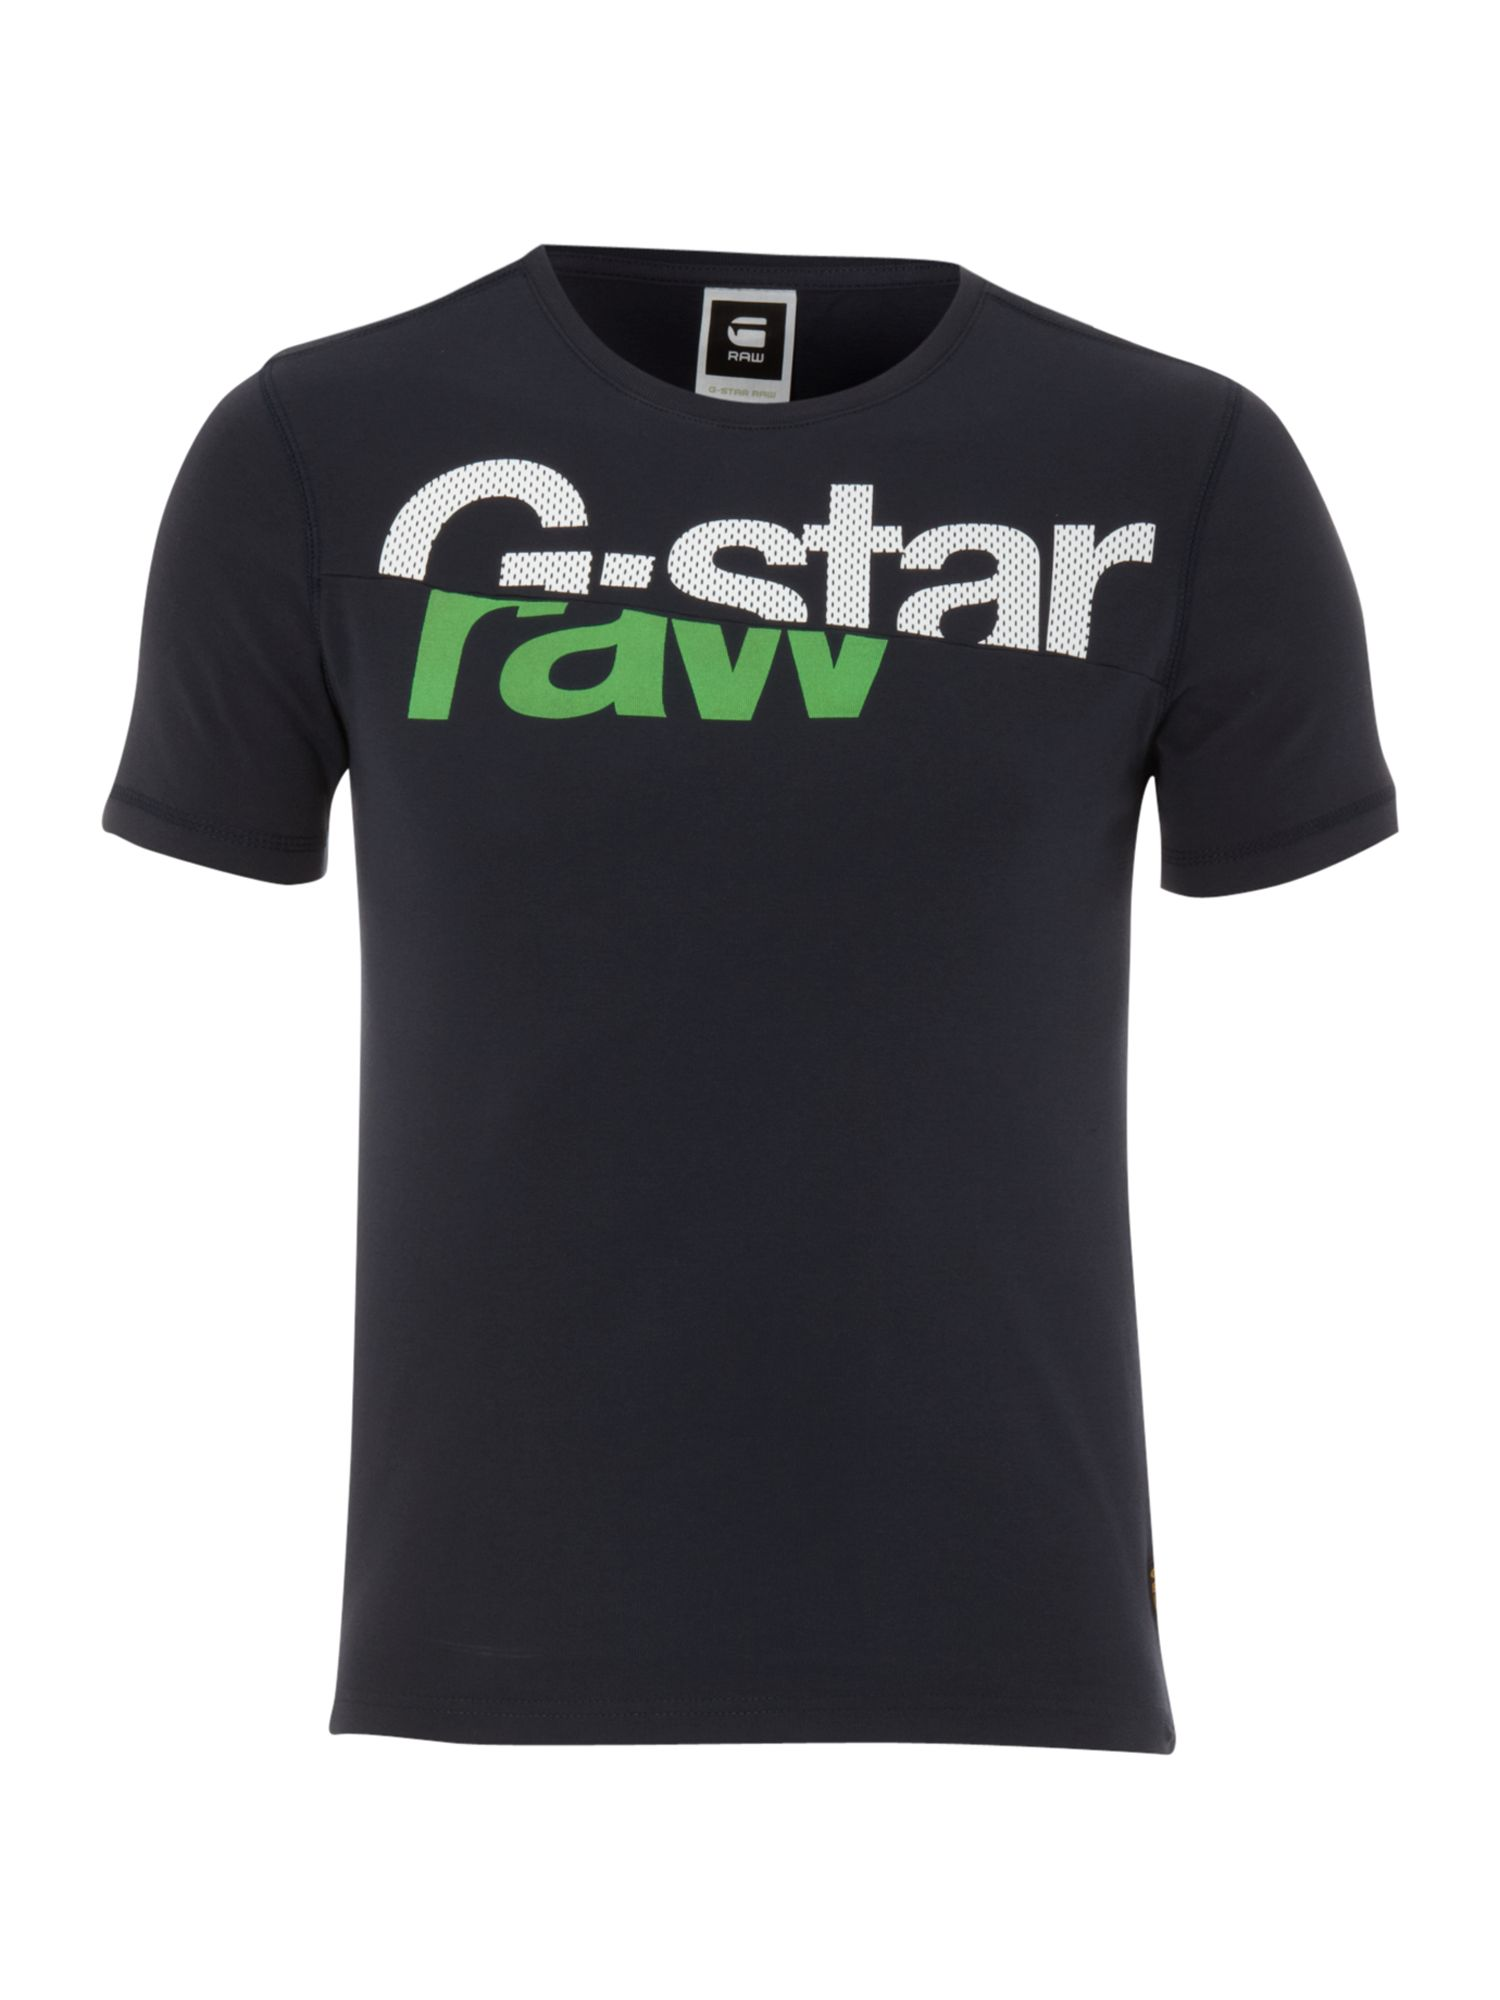 G-Star Split logo T-shirt - Grey XL,XL,XL product image